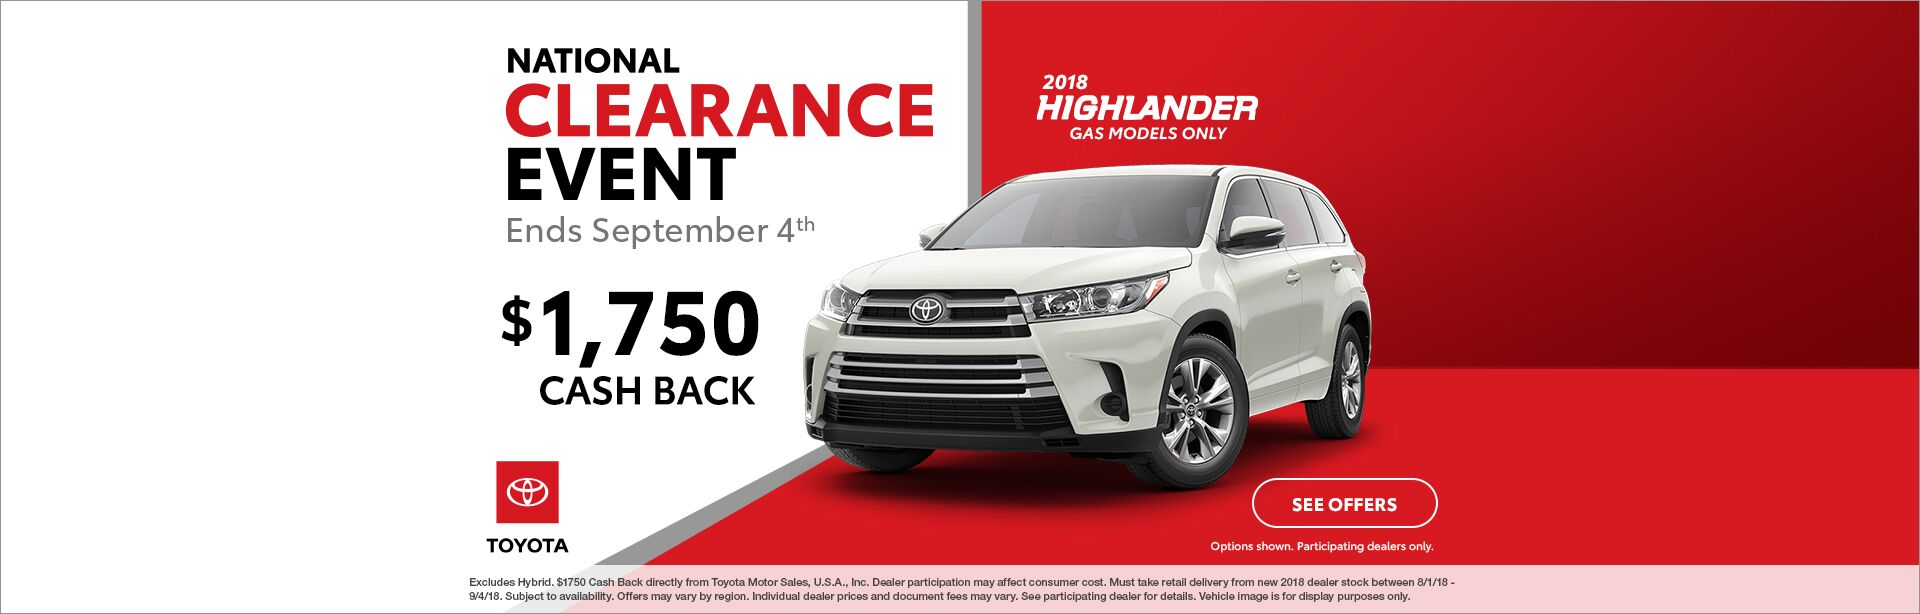 Highlander Cash Back National Clearance Event 2018